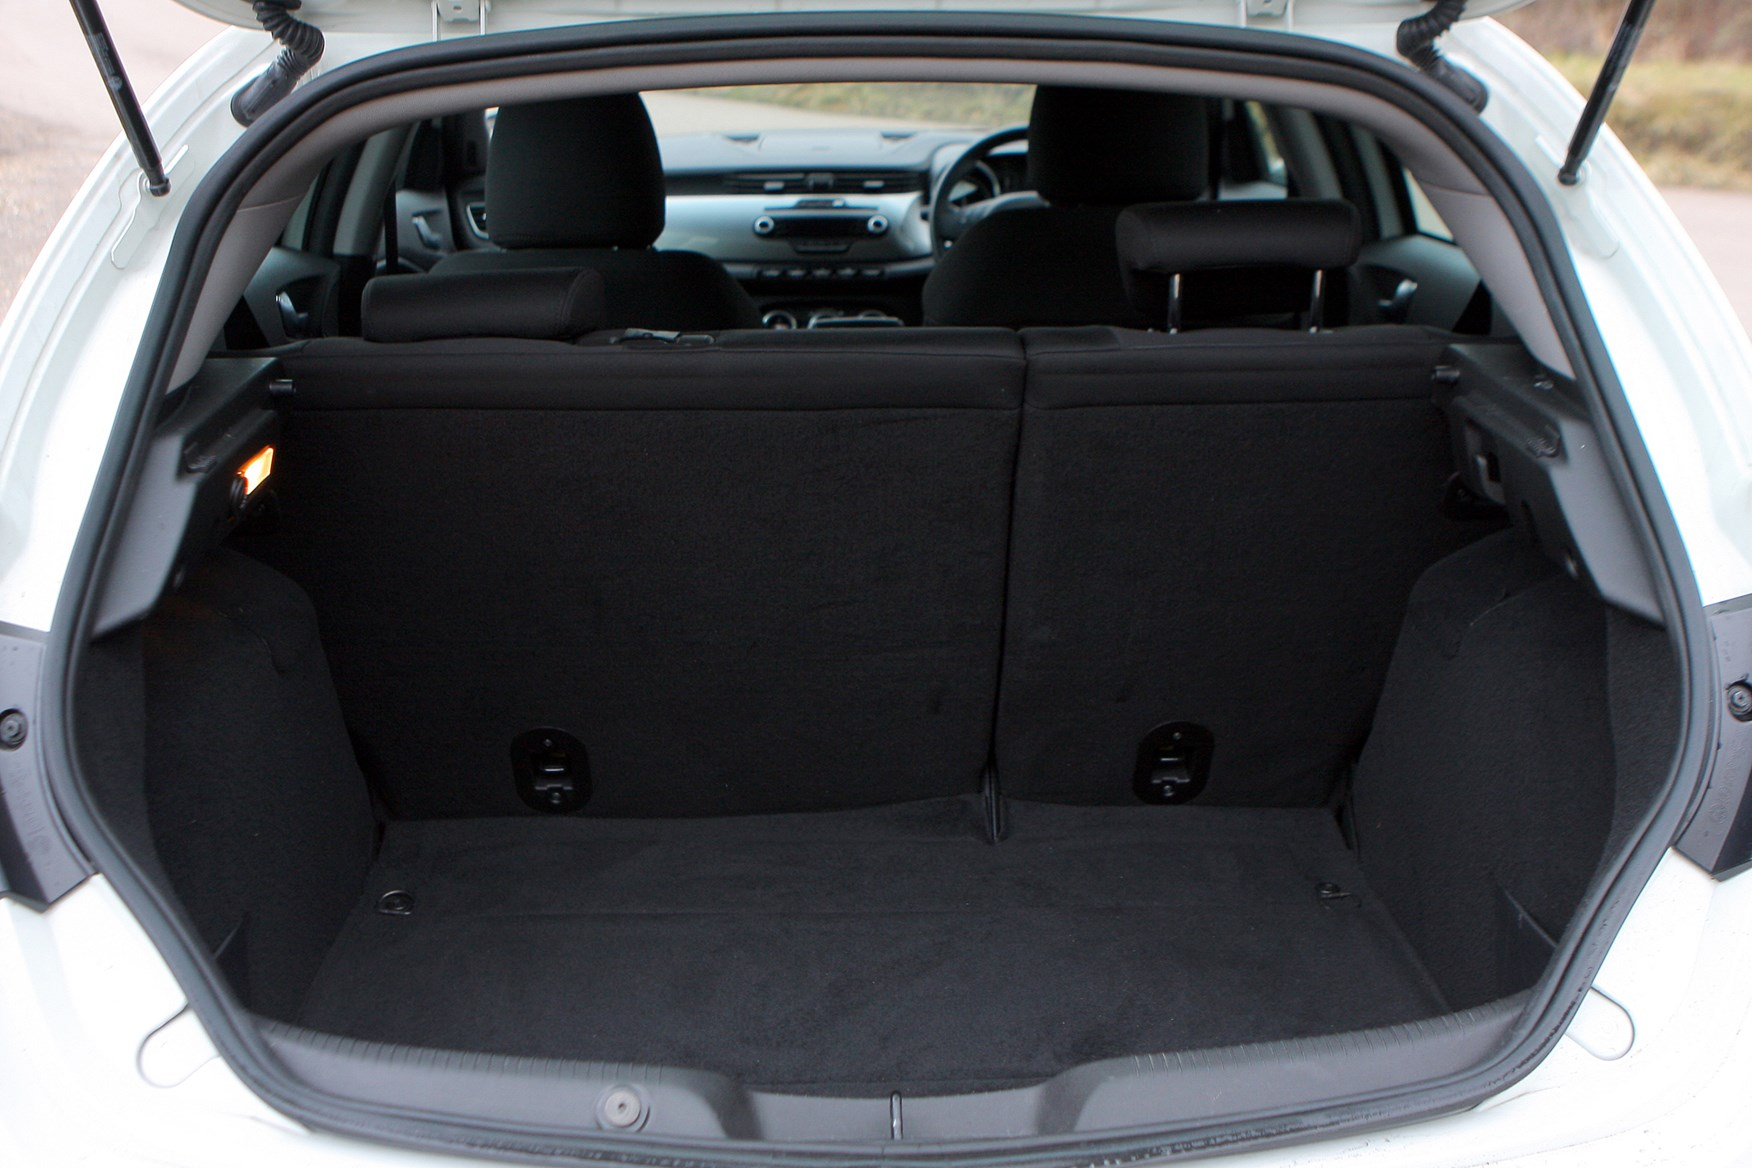 Alfa romeo mito boot space 15